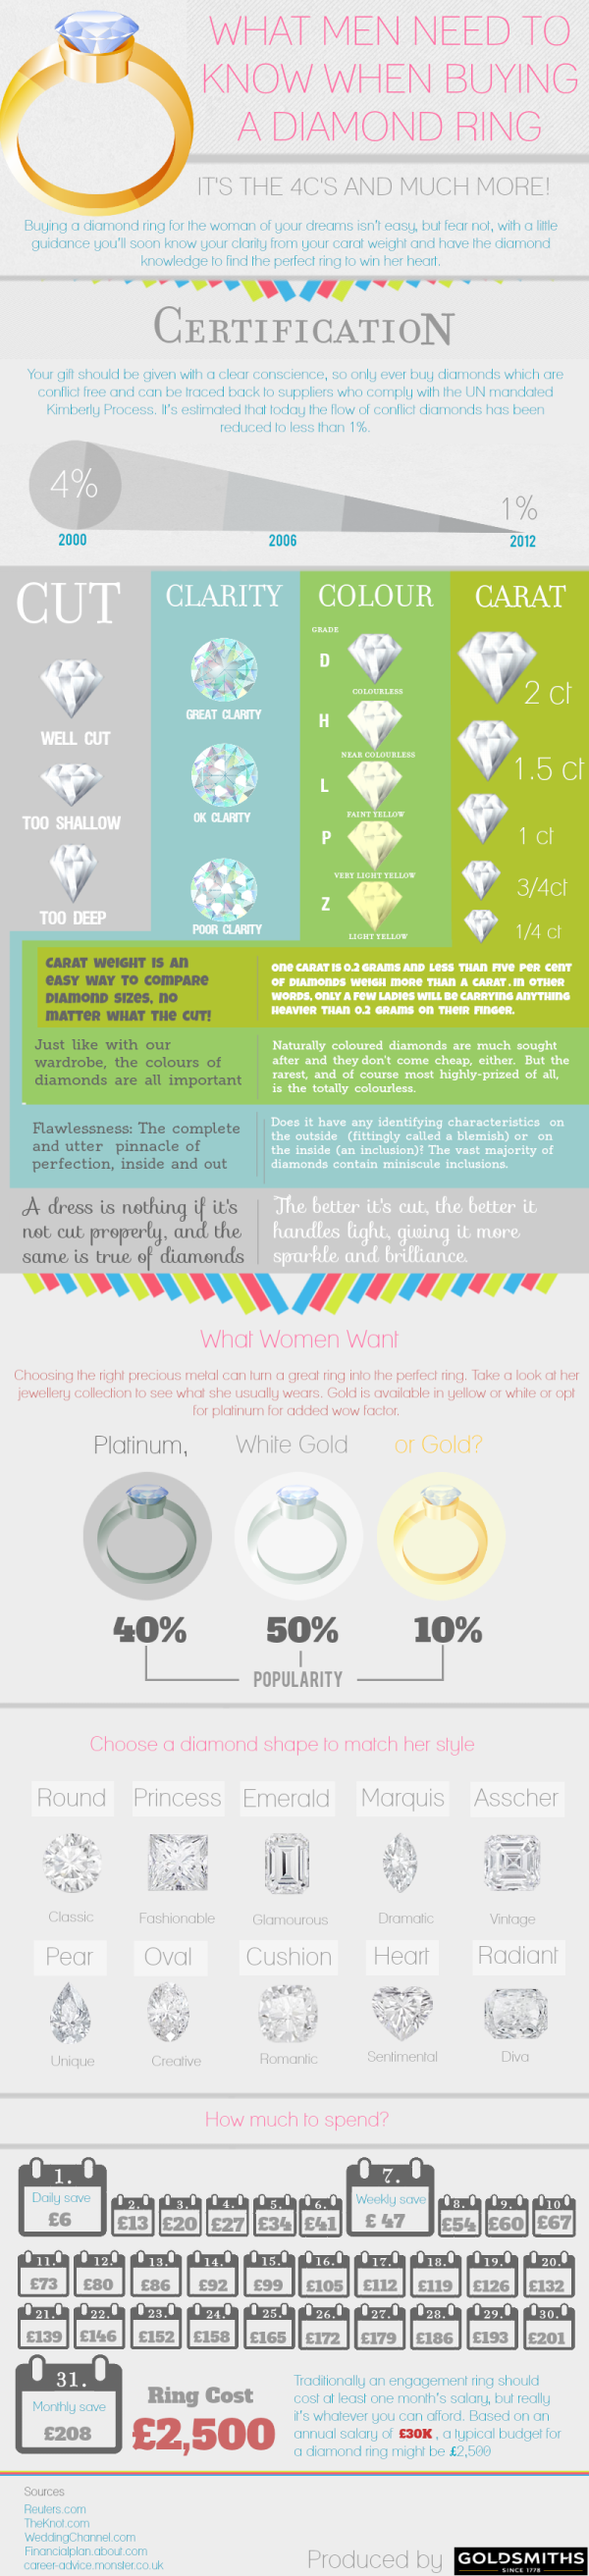 Diamond Ring Buying Guide-Infographic